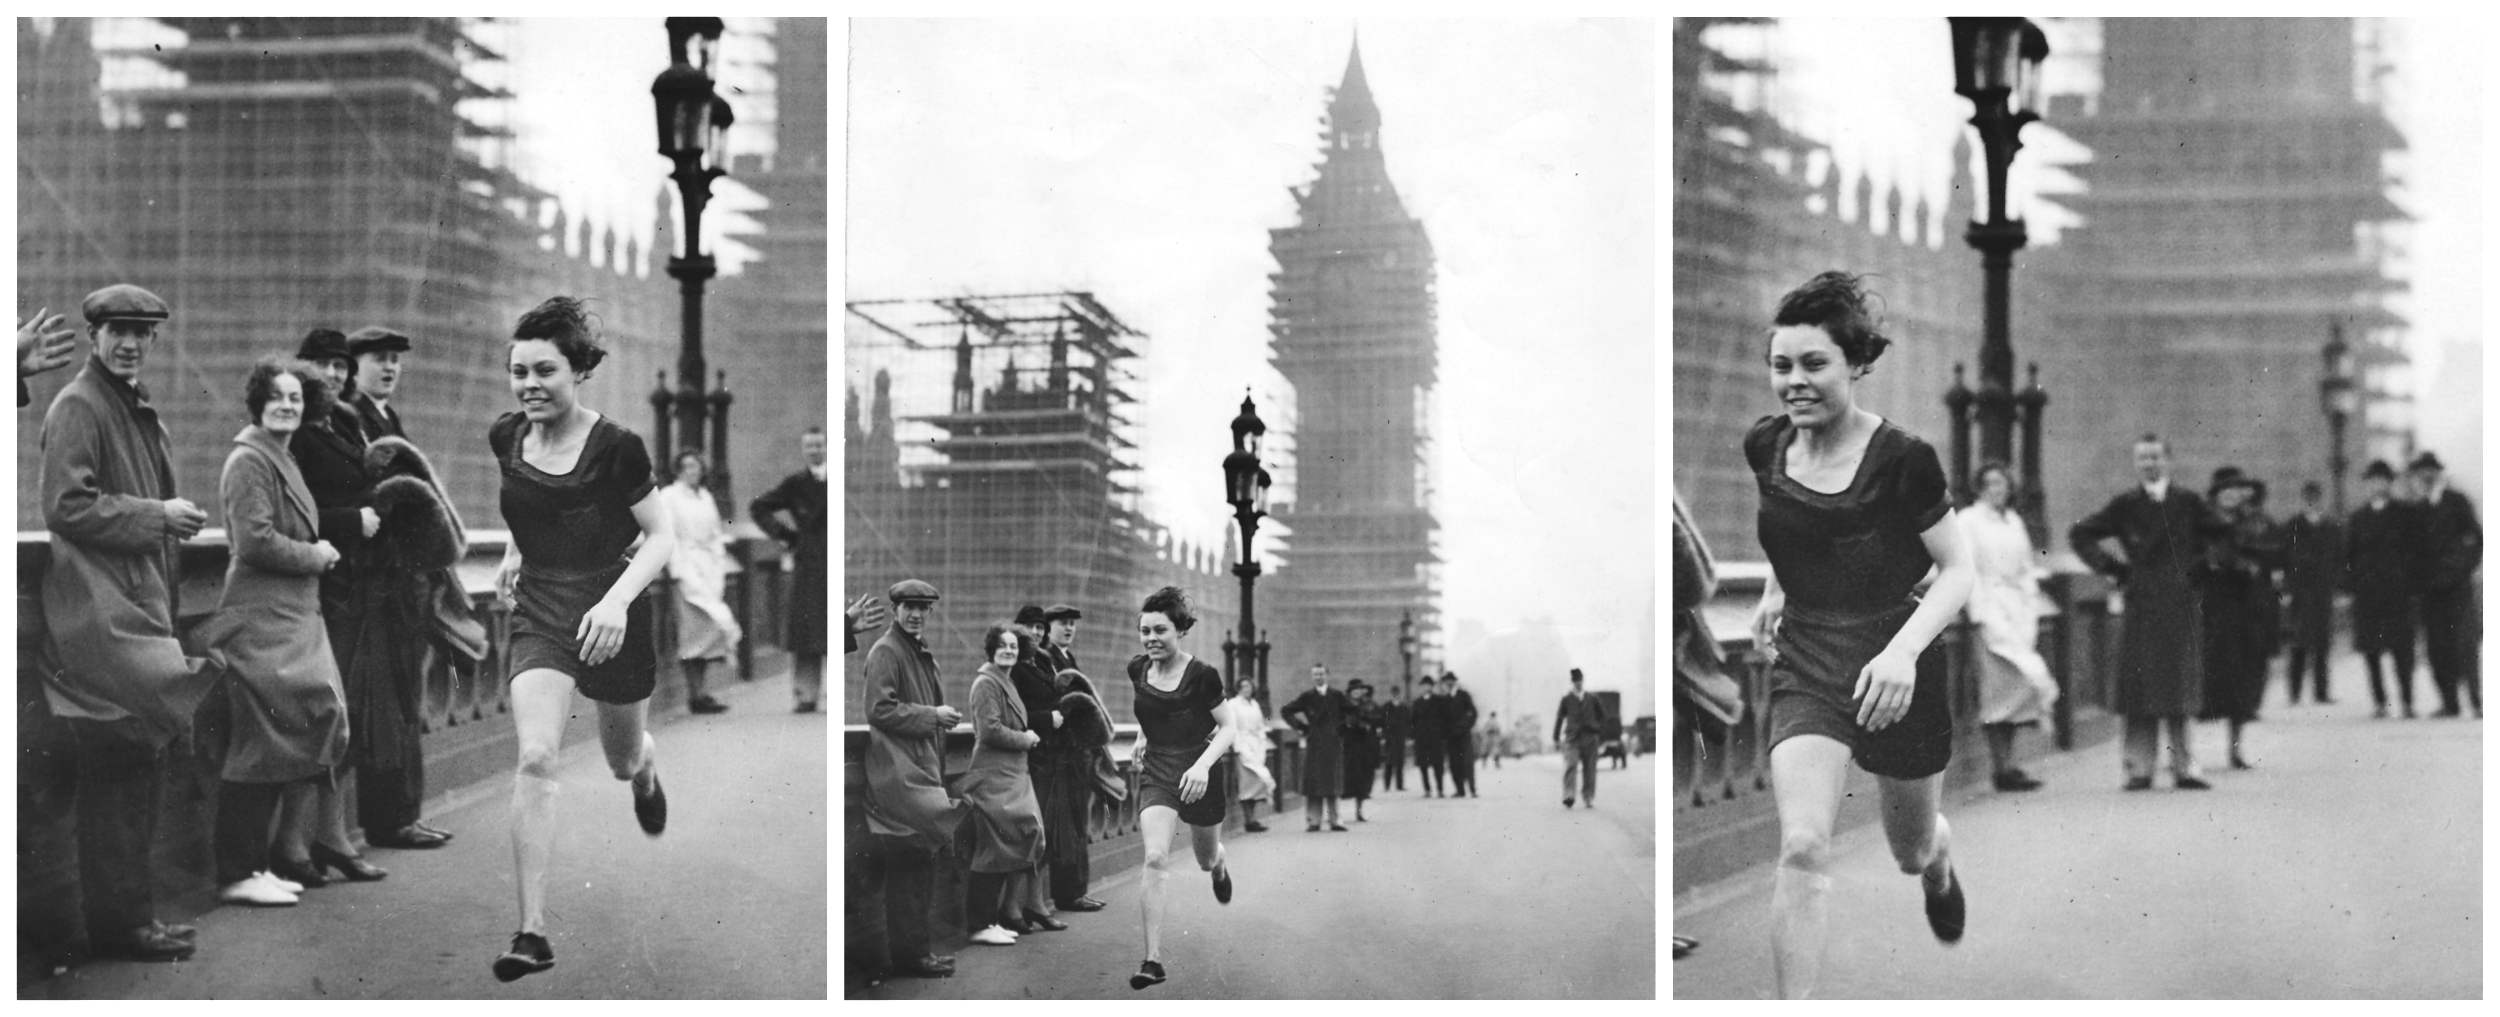 Florence, 1934, sprinting across Westminster Bridge, London